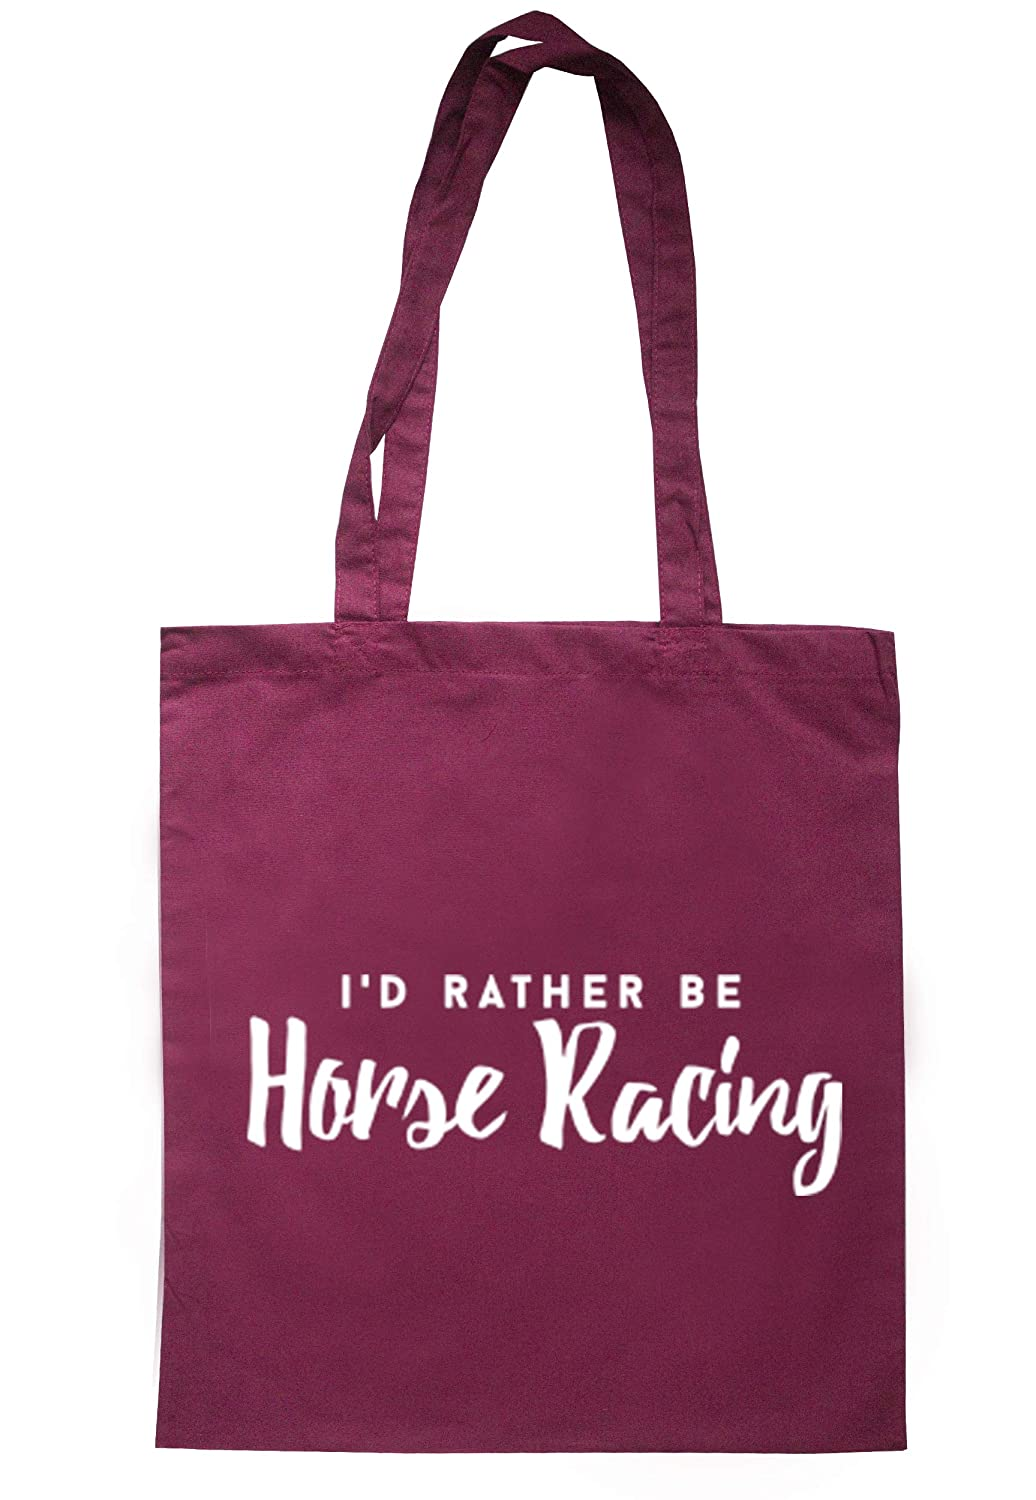 illustratedidentity I'd Rather Be Horse Racing Tote Bag 37.5cm x 42cm with long handles TB0160-TB-NV